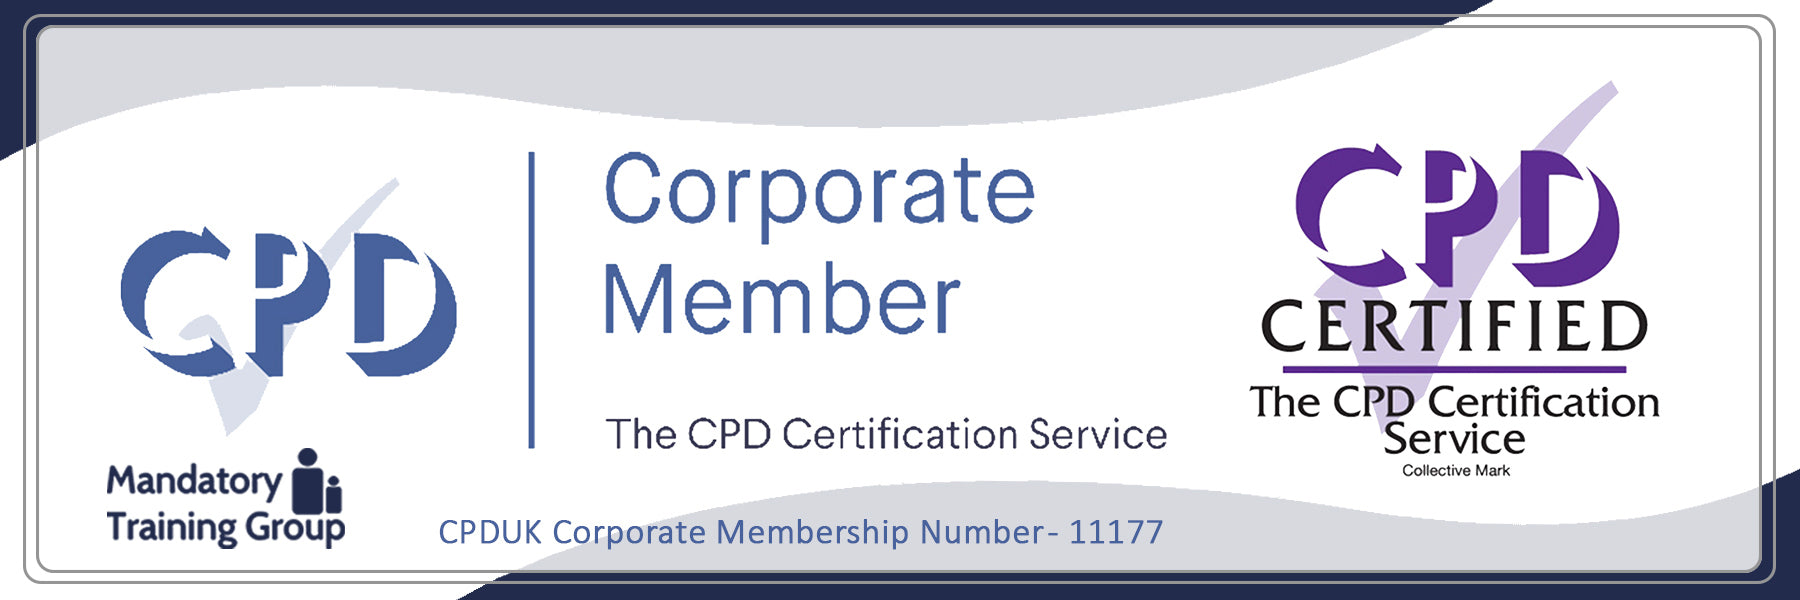 Introduction to HIPAA for Business Associates - Online Training Course - The Mandatory Training Group UK -